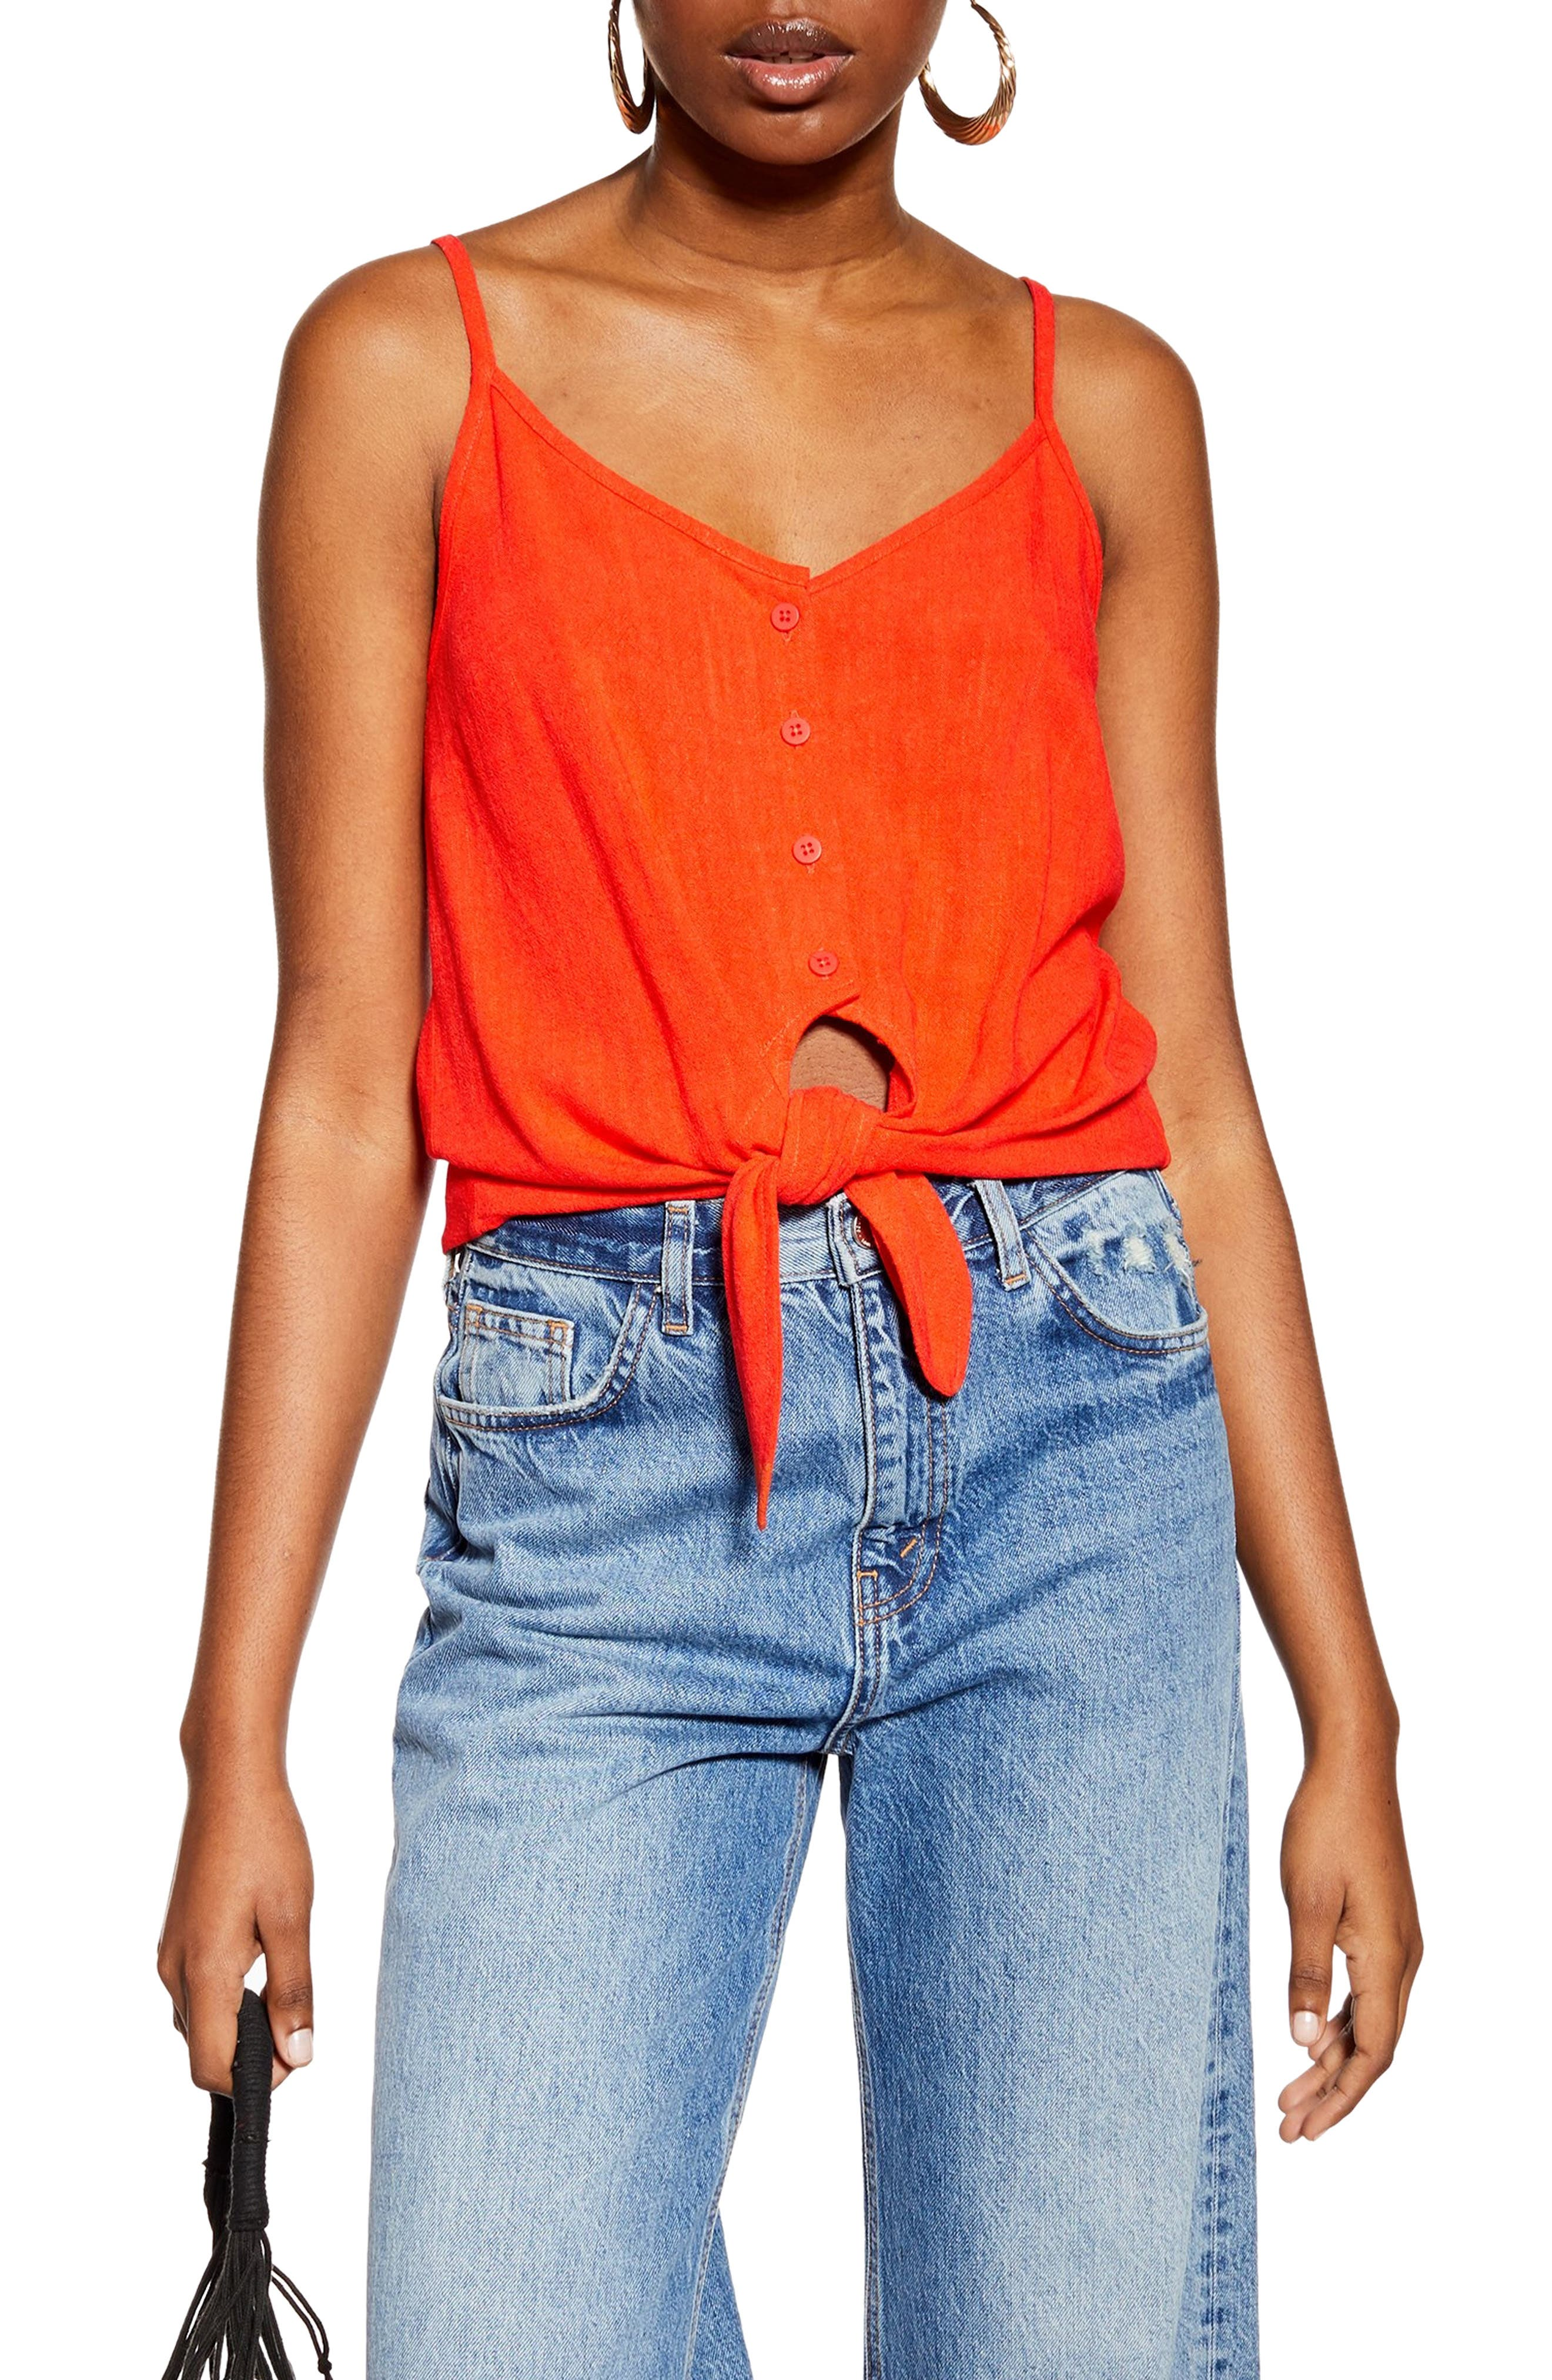 Topshop Polly Tie Front Camisole, US (fits like 14) - Orange